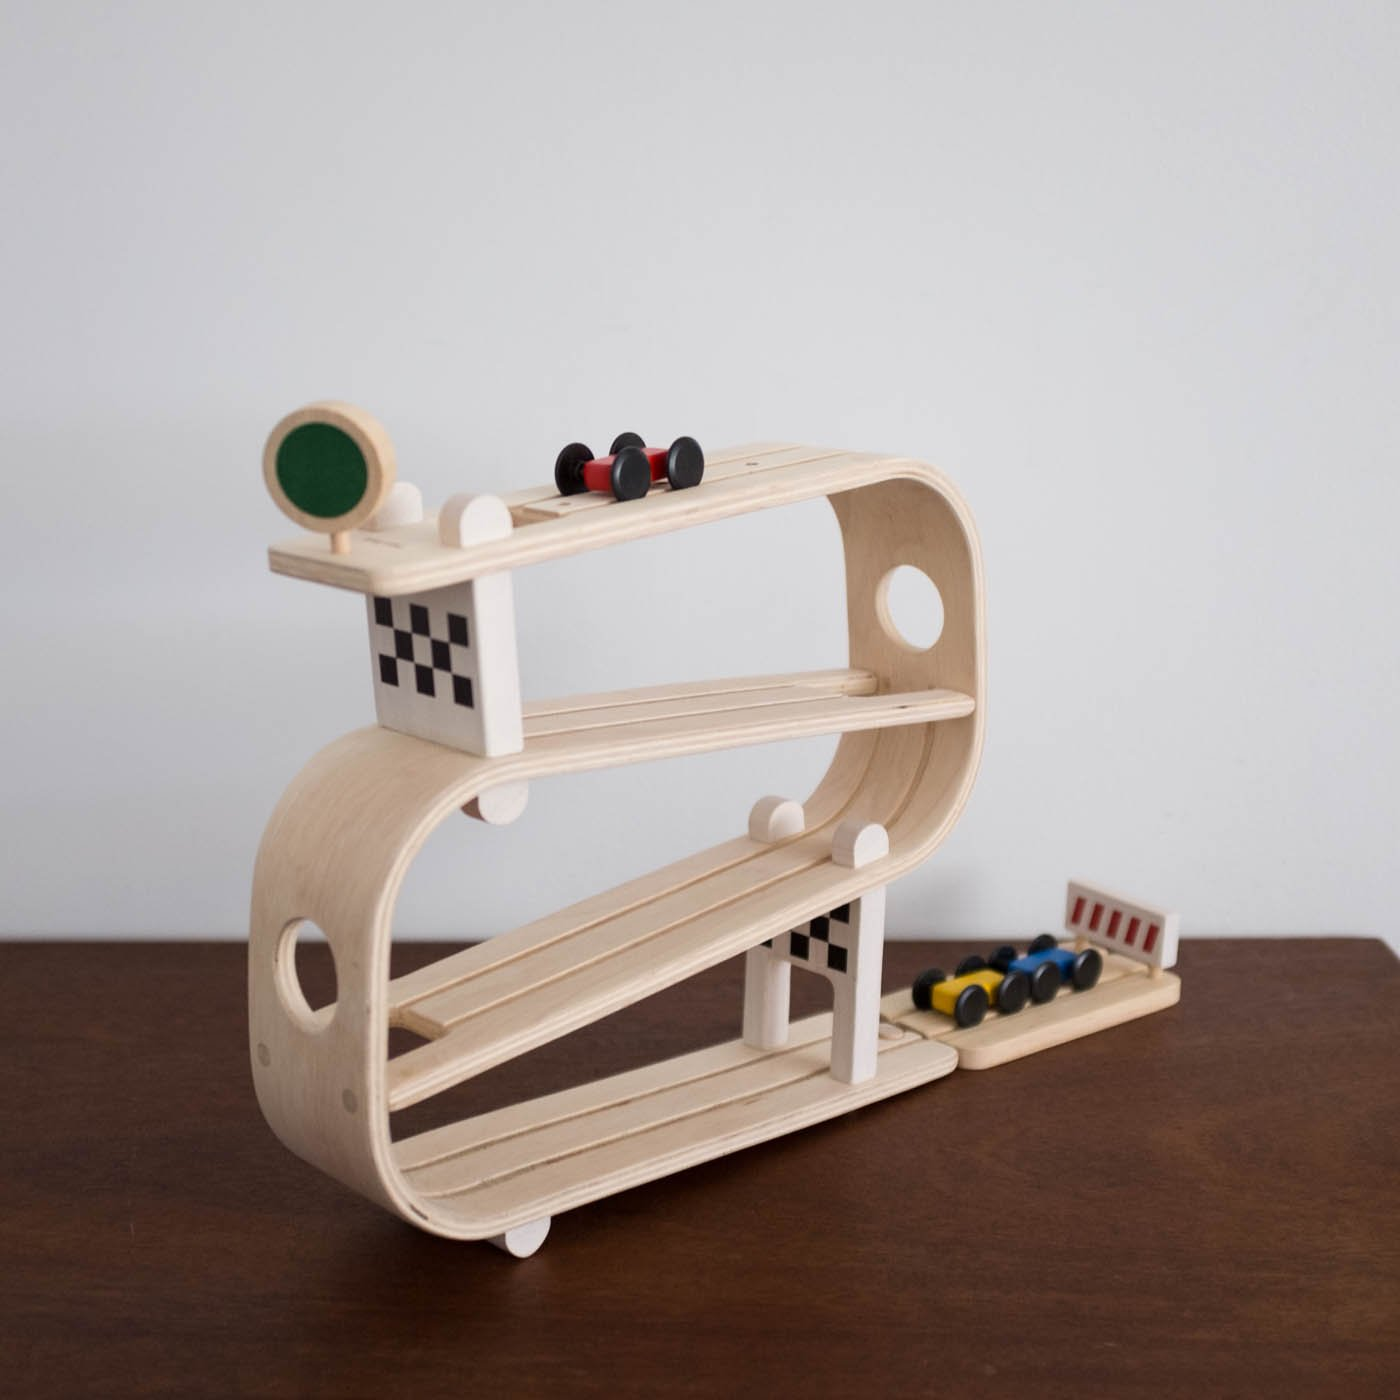 Kids Plan Toys Wooden Ramp Racer